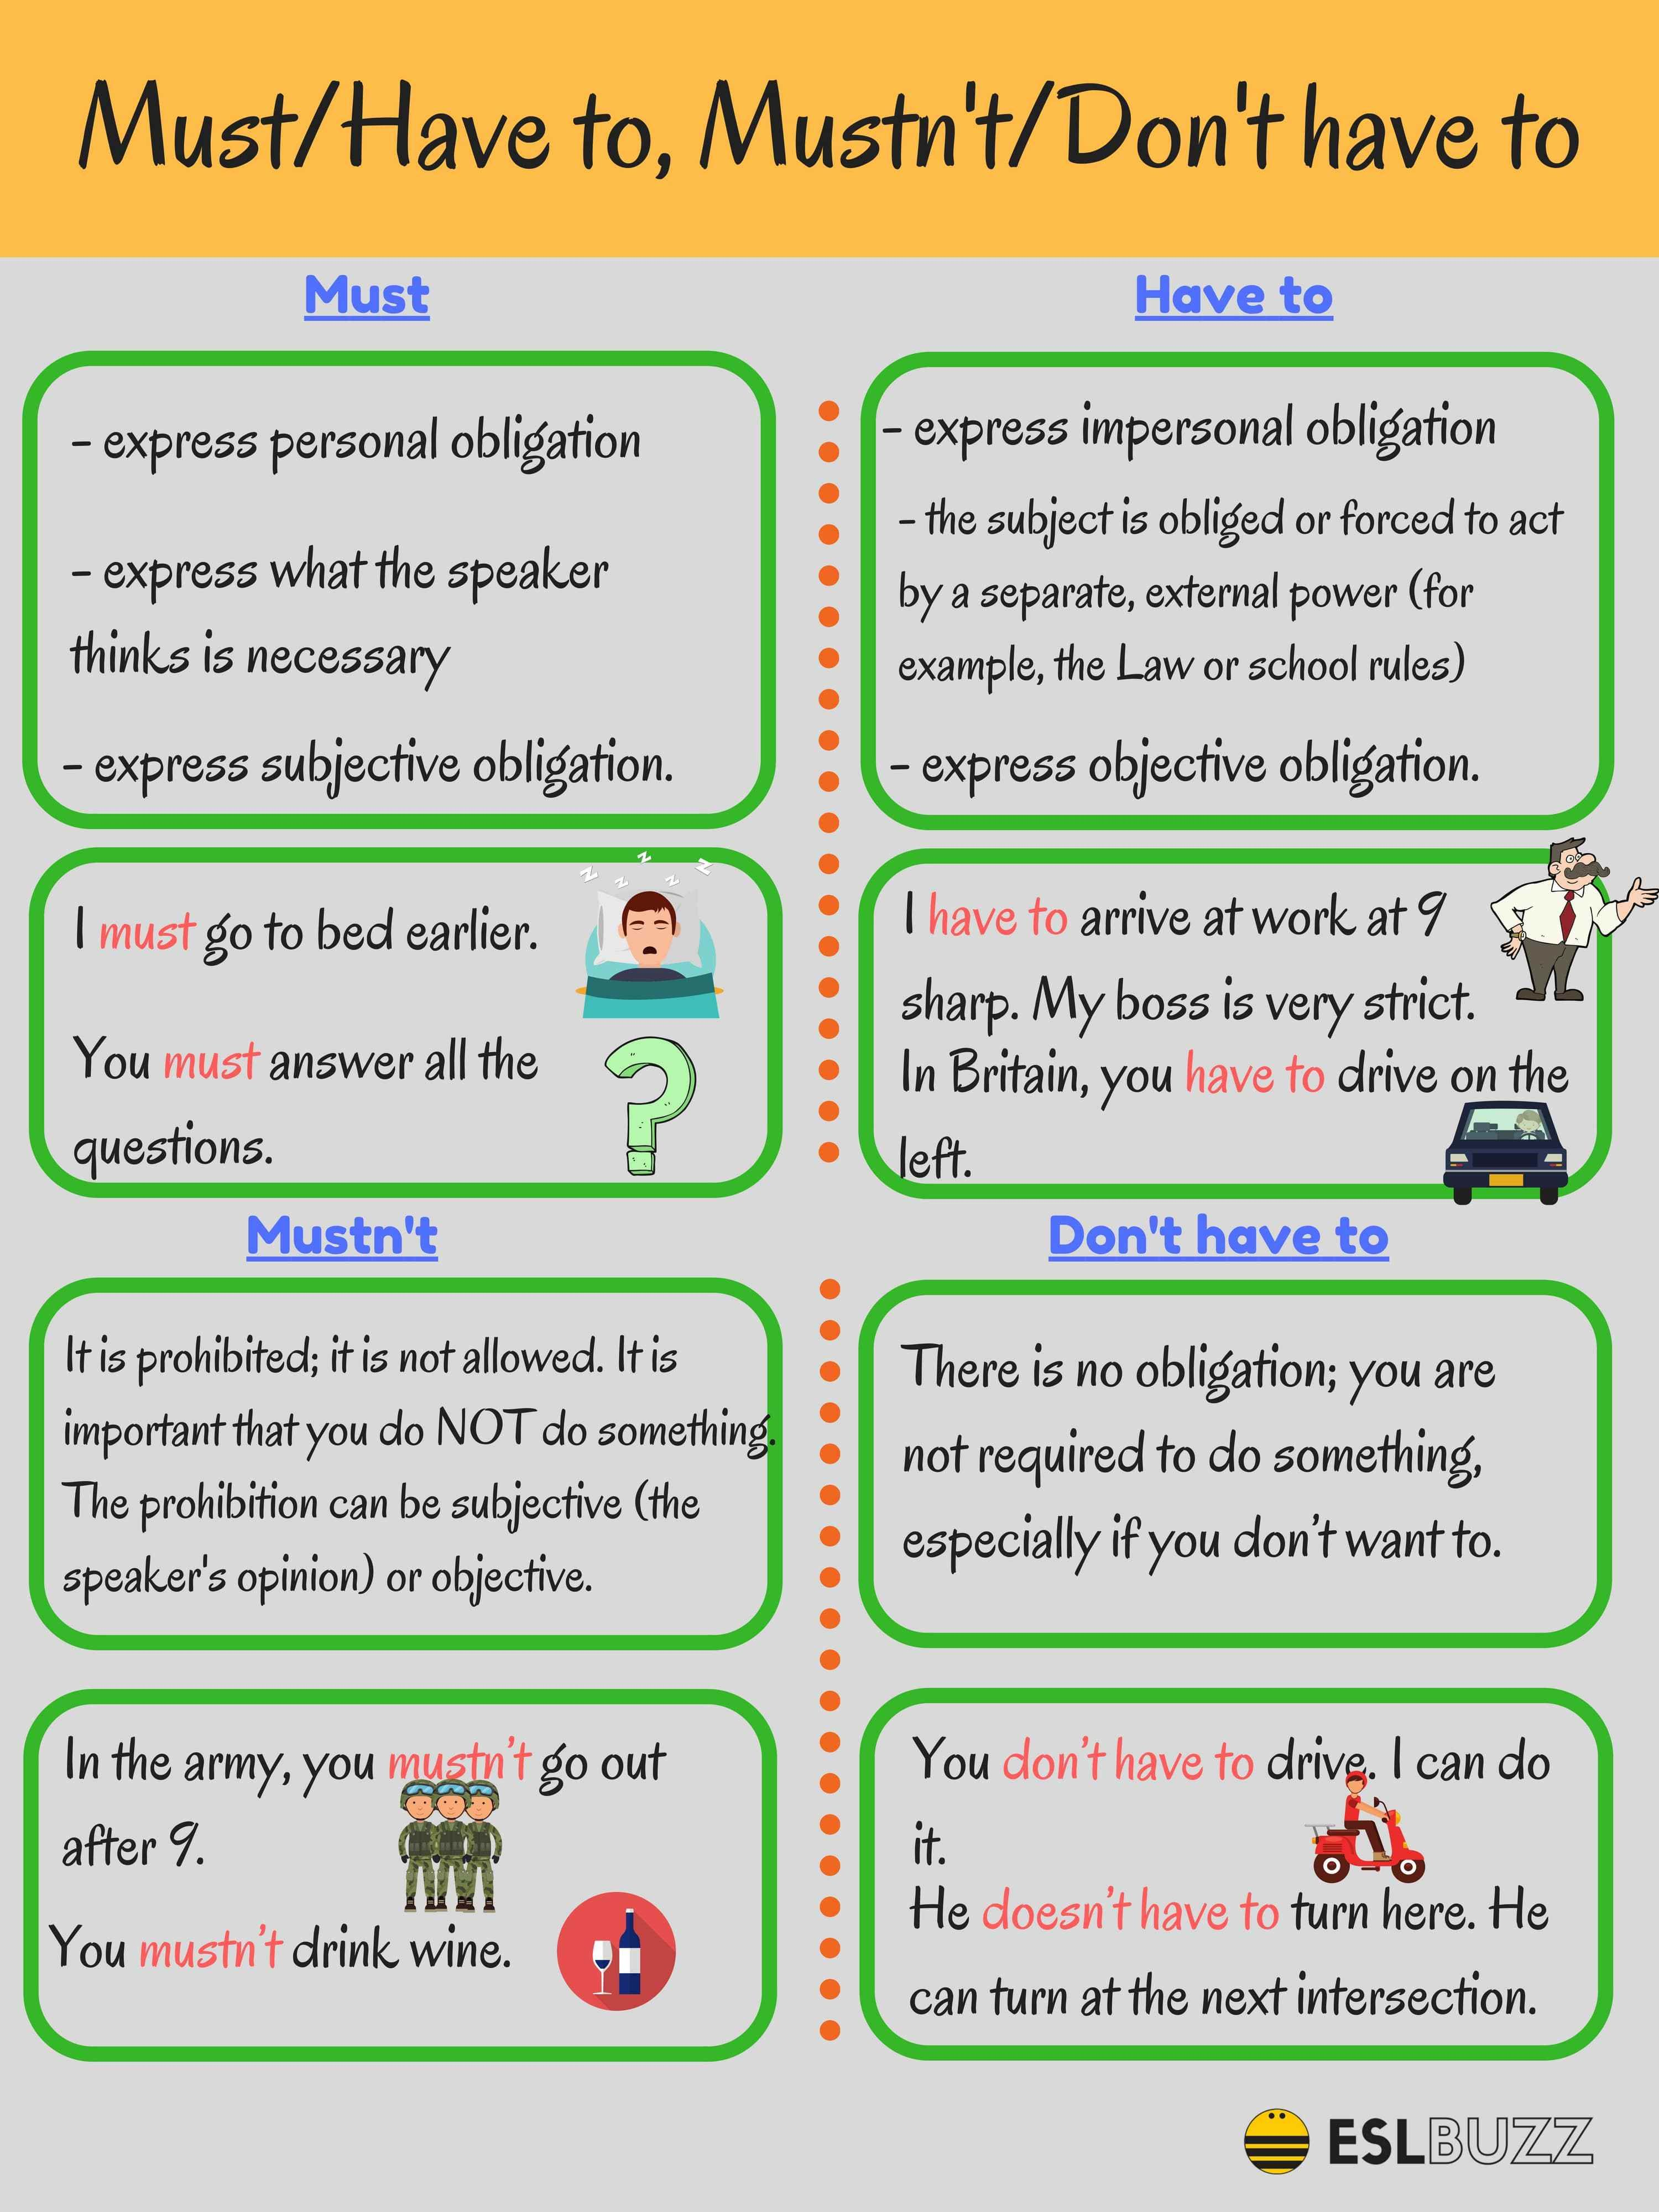 English Grammar Must And Have To Mustn T And Don T Have To